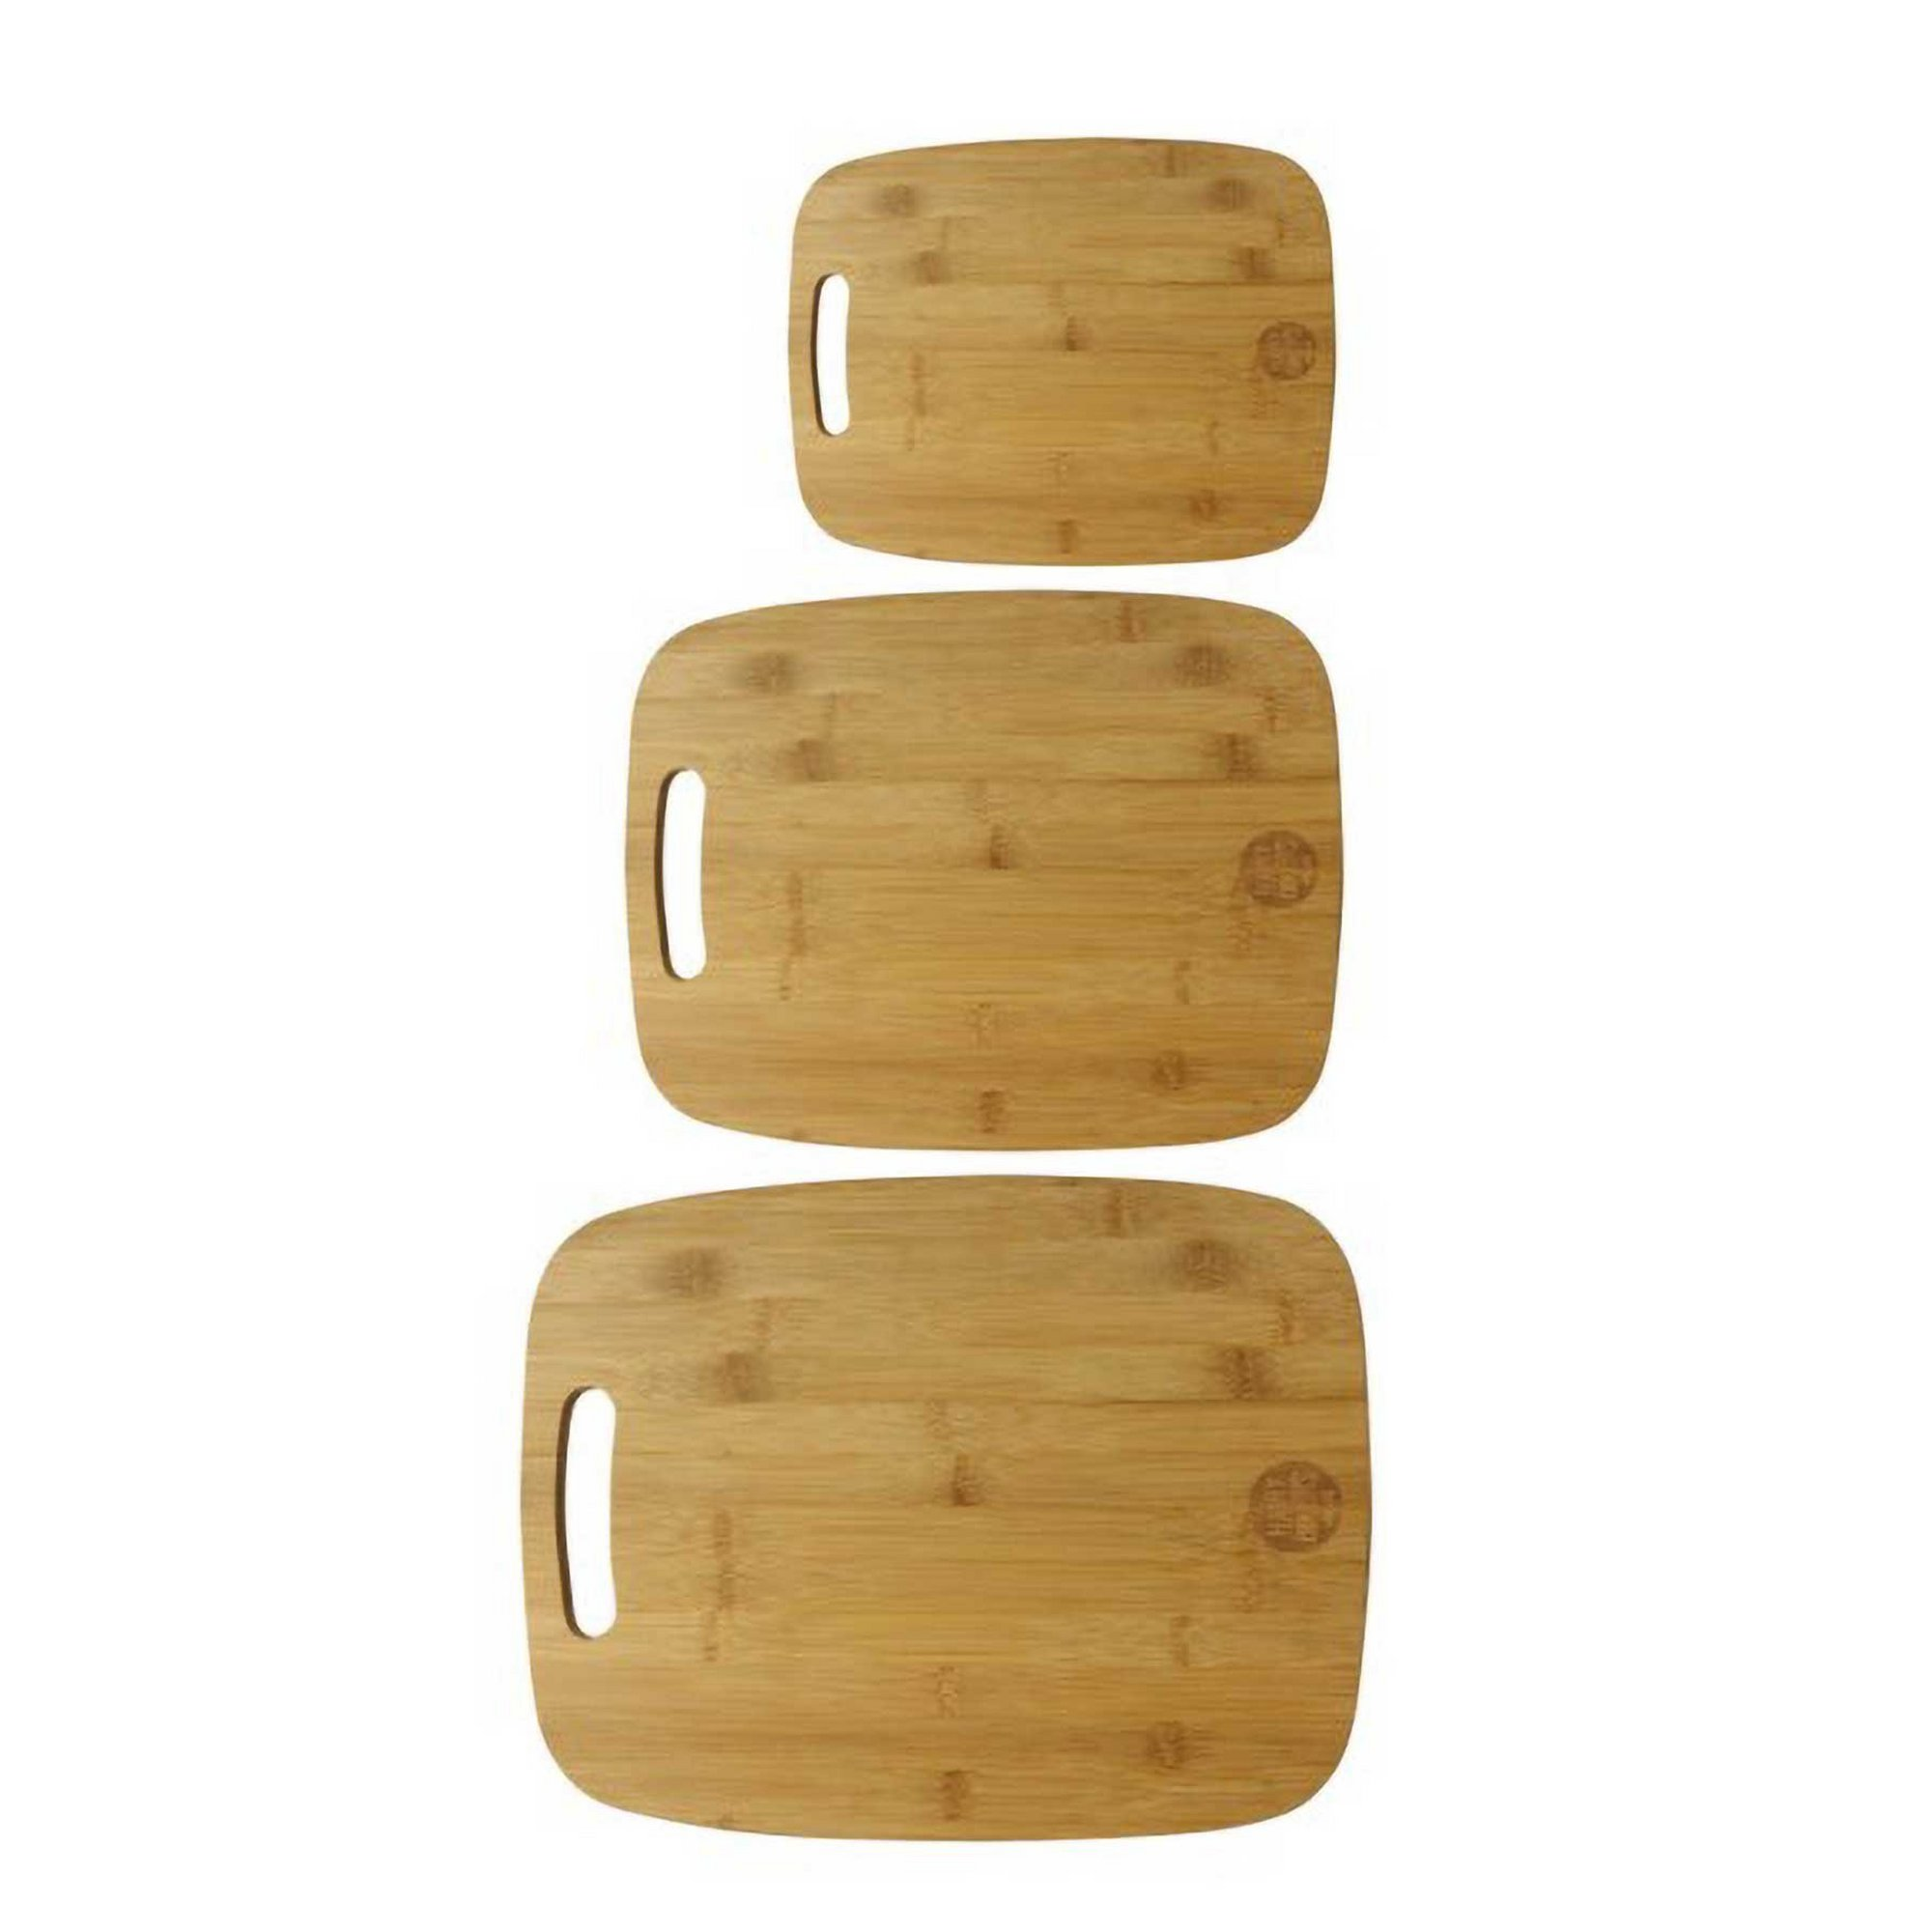 Image of Hairy Bikers Set of Three Bamboo Chopping Boards